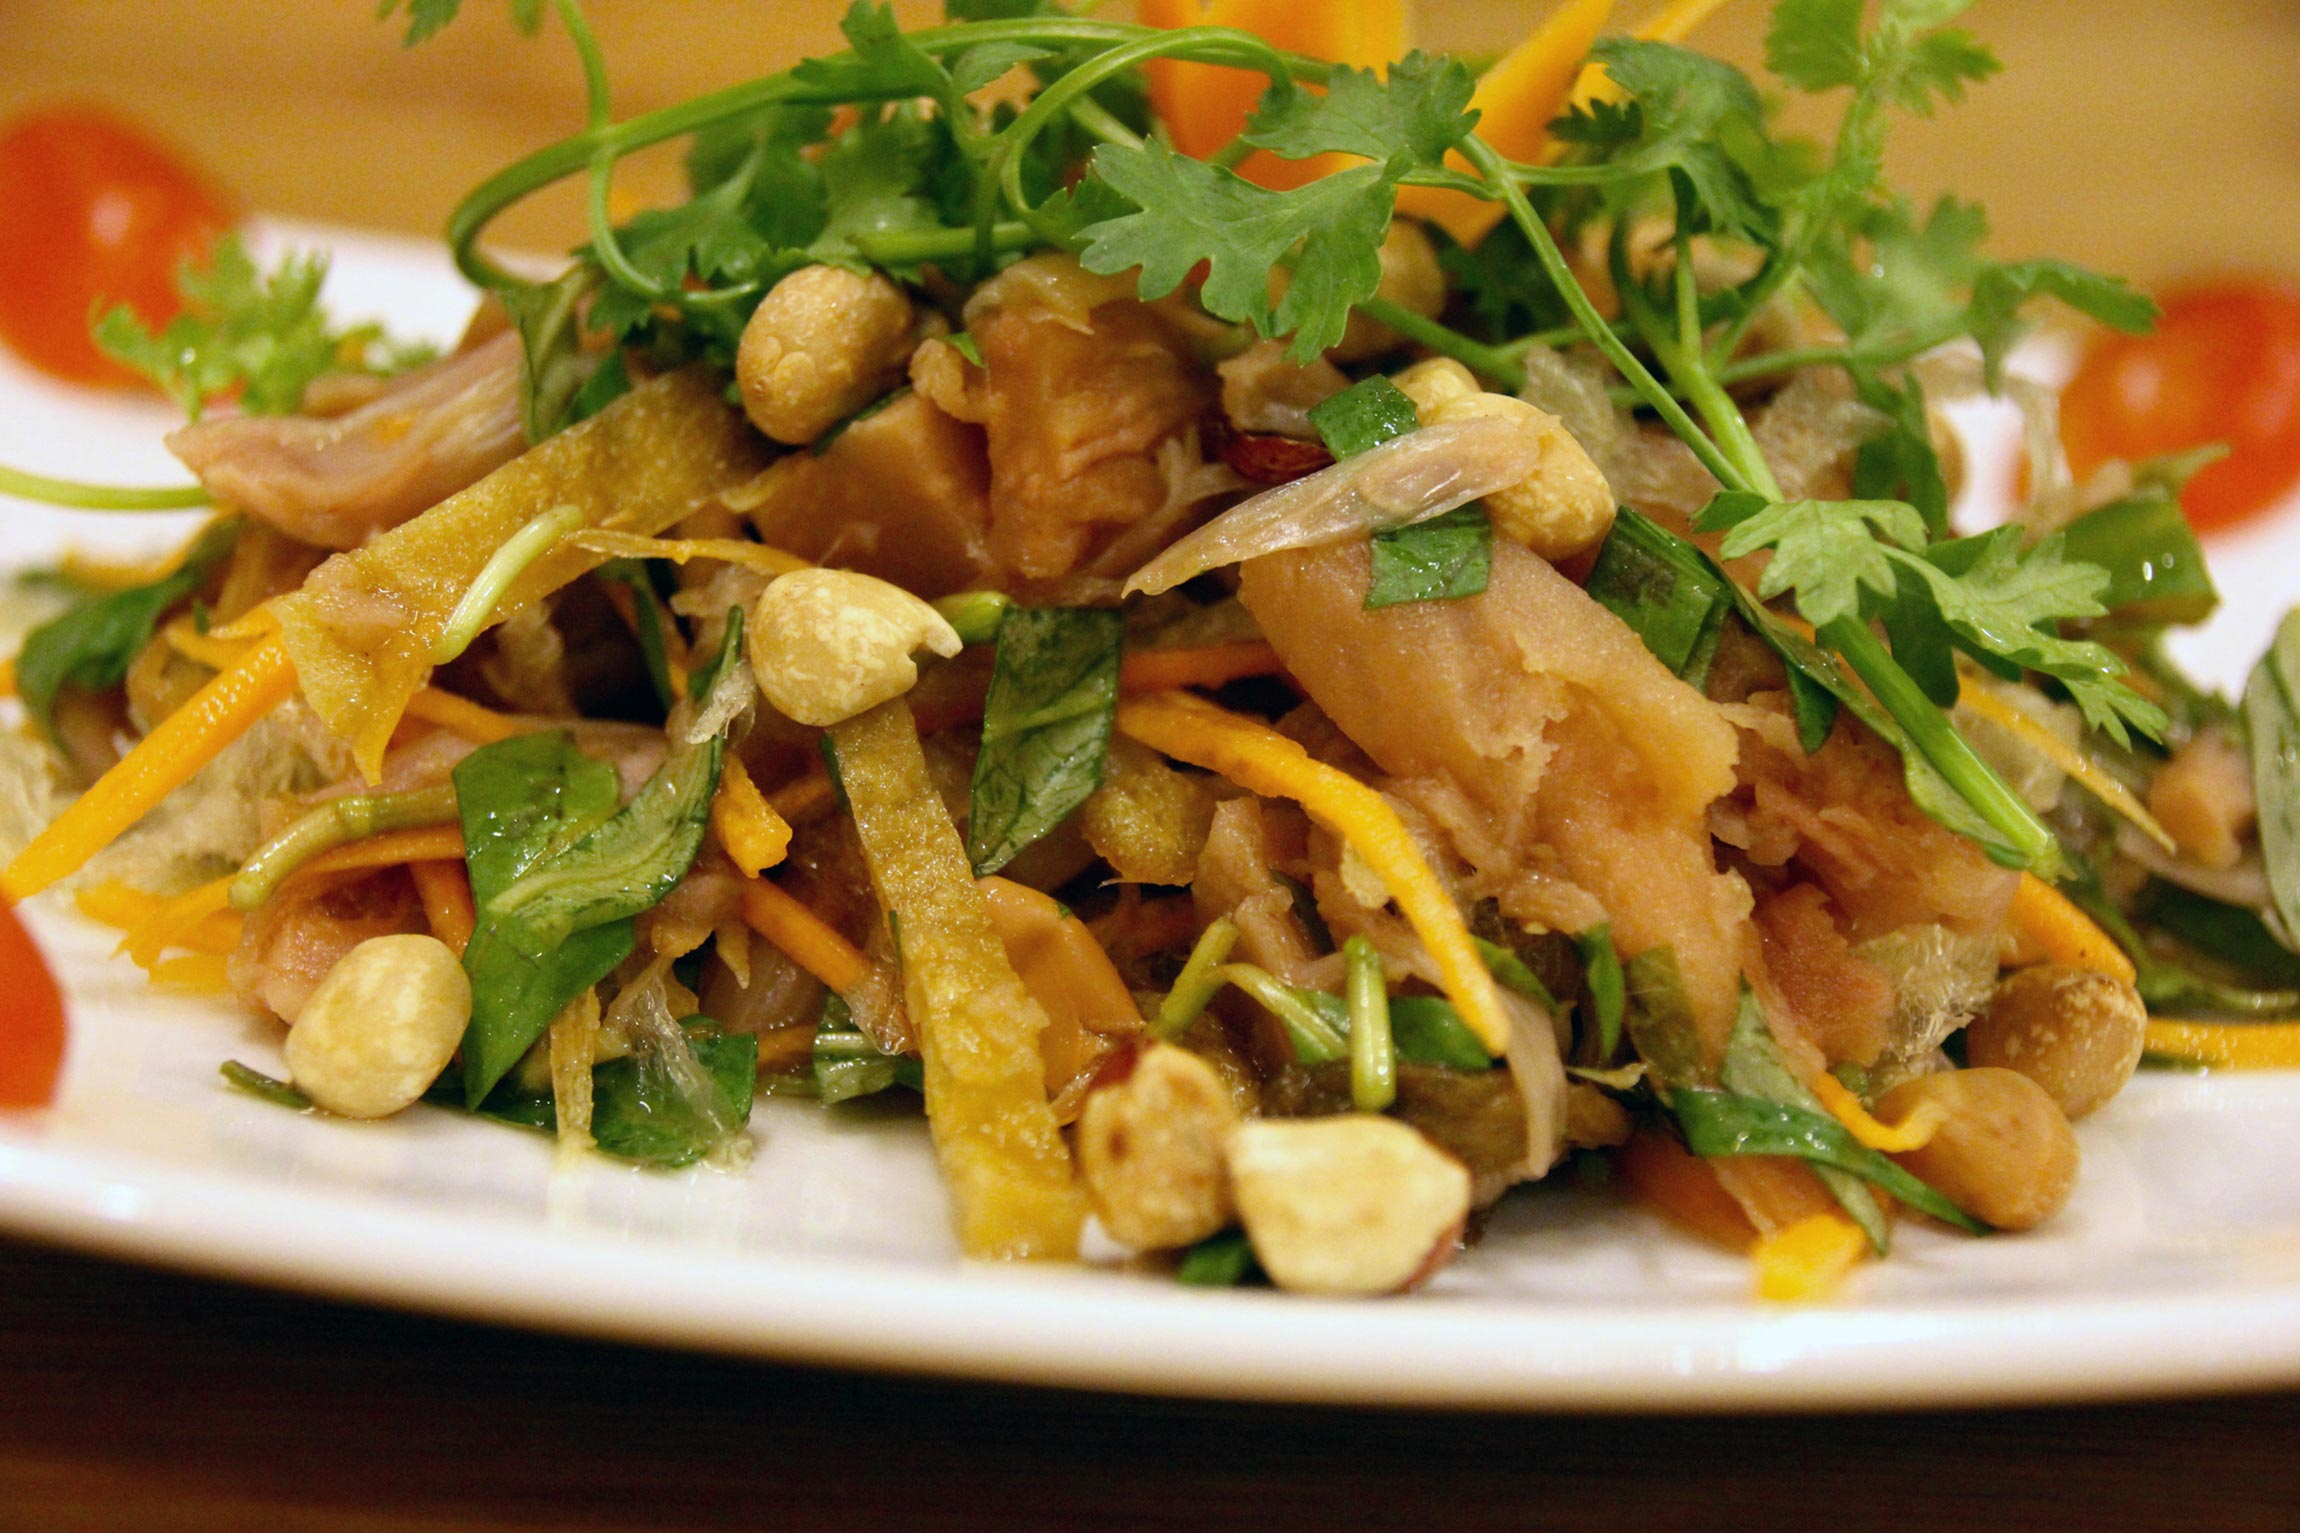 Pulled jackfruit salad